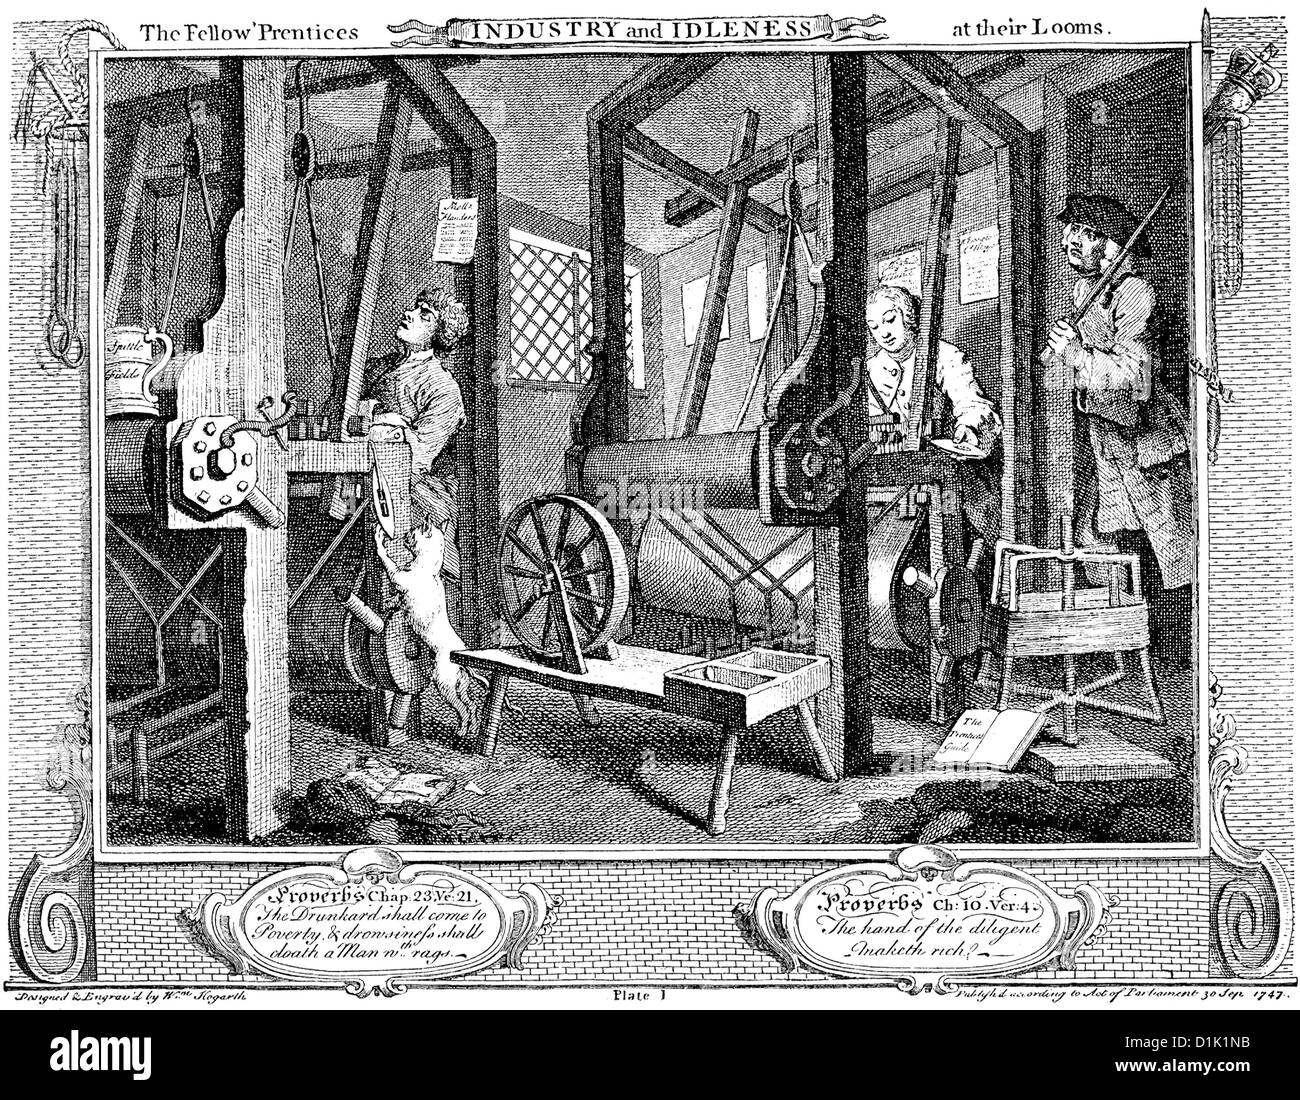 Weaving mill at a residential house in the middle of the 18th century in England, historic drawing by William Hogarth, - Stock Image